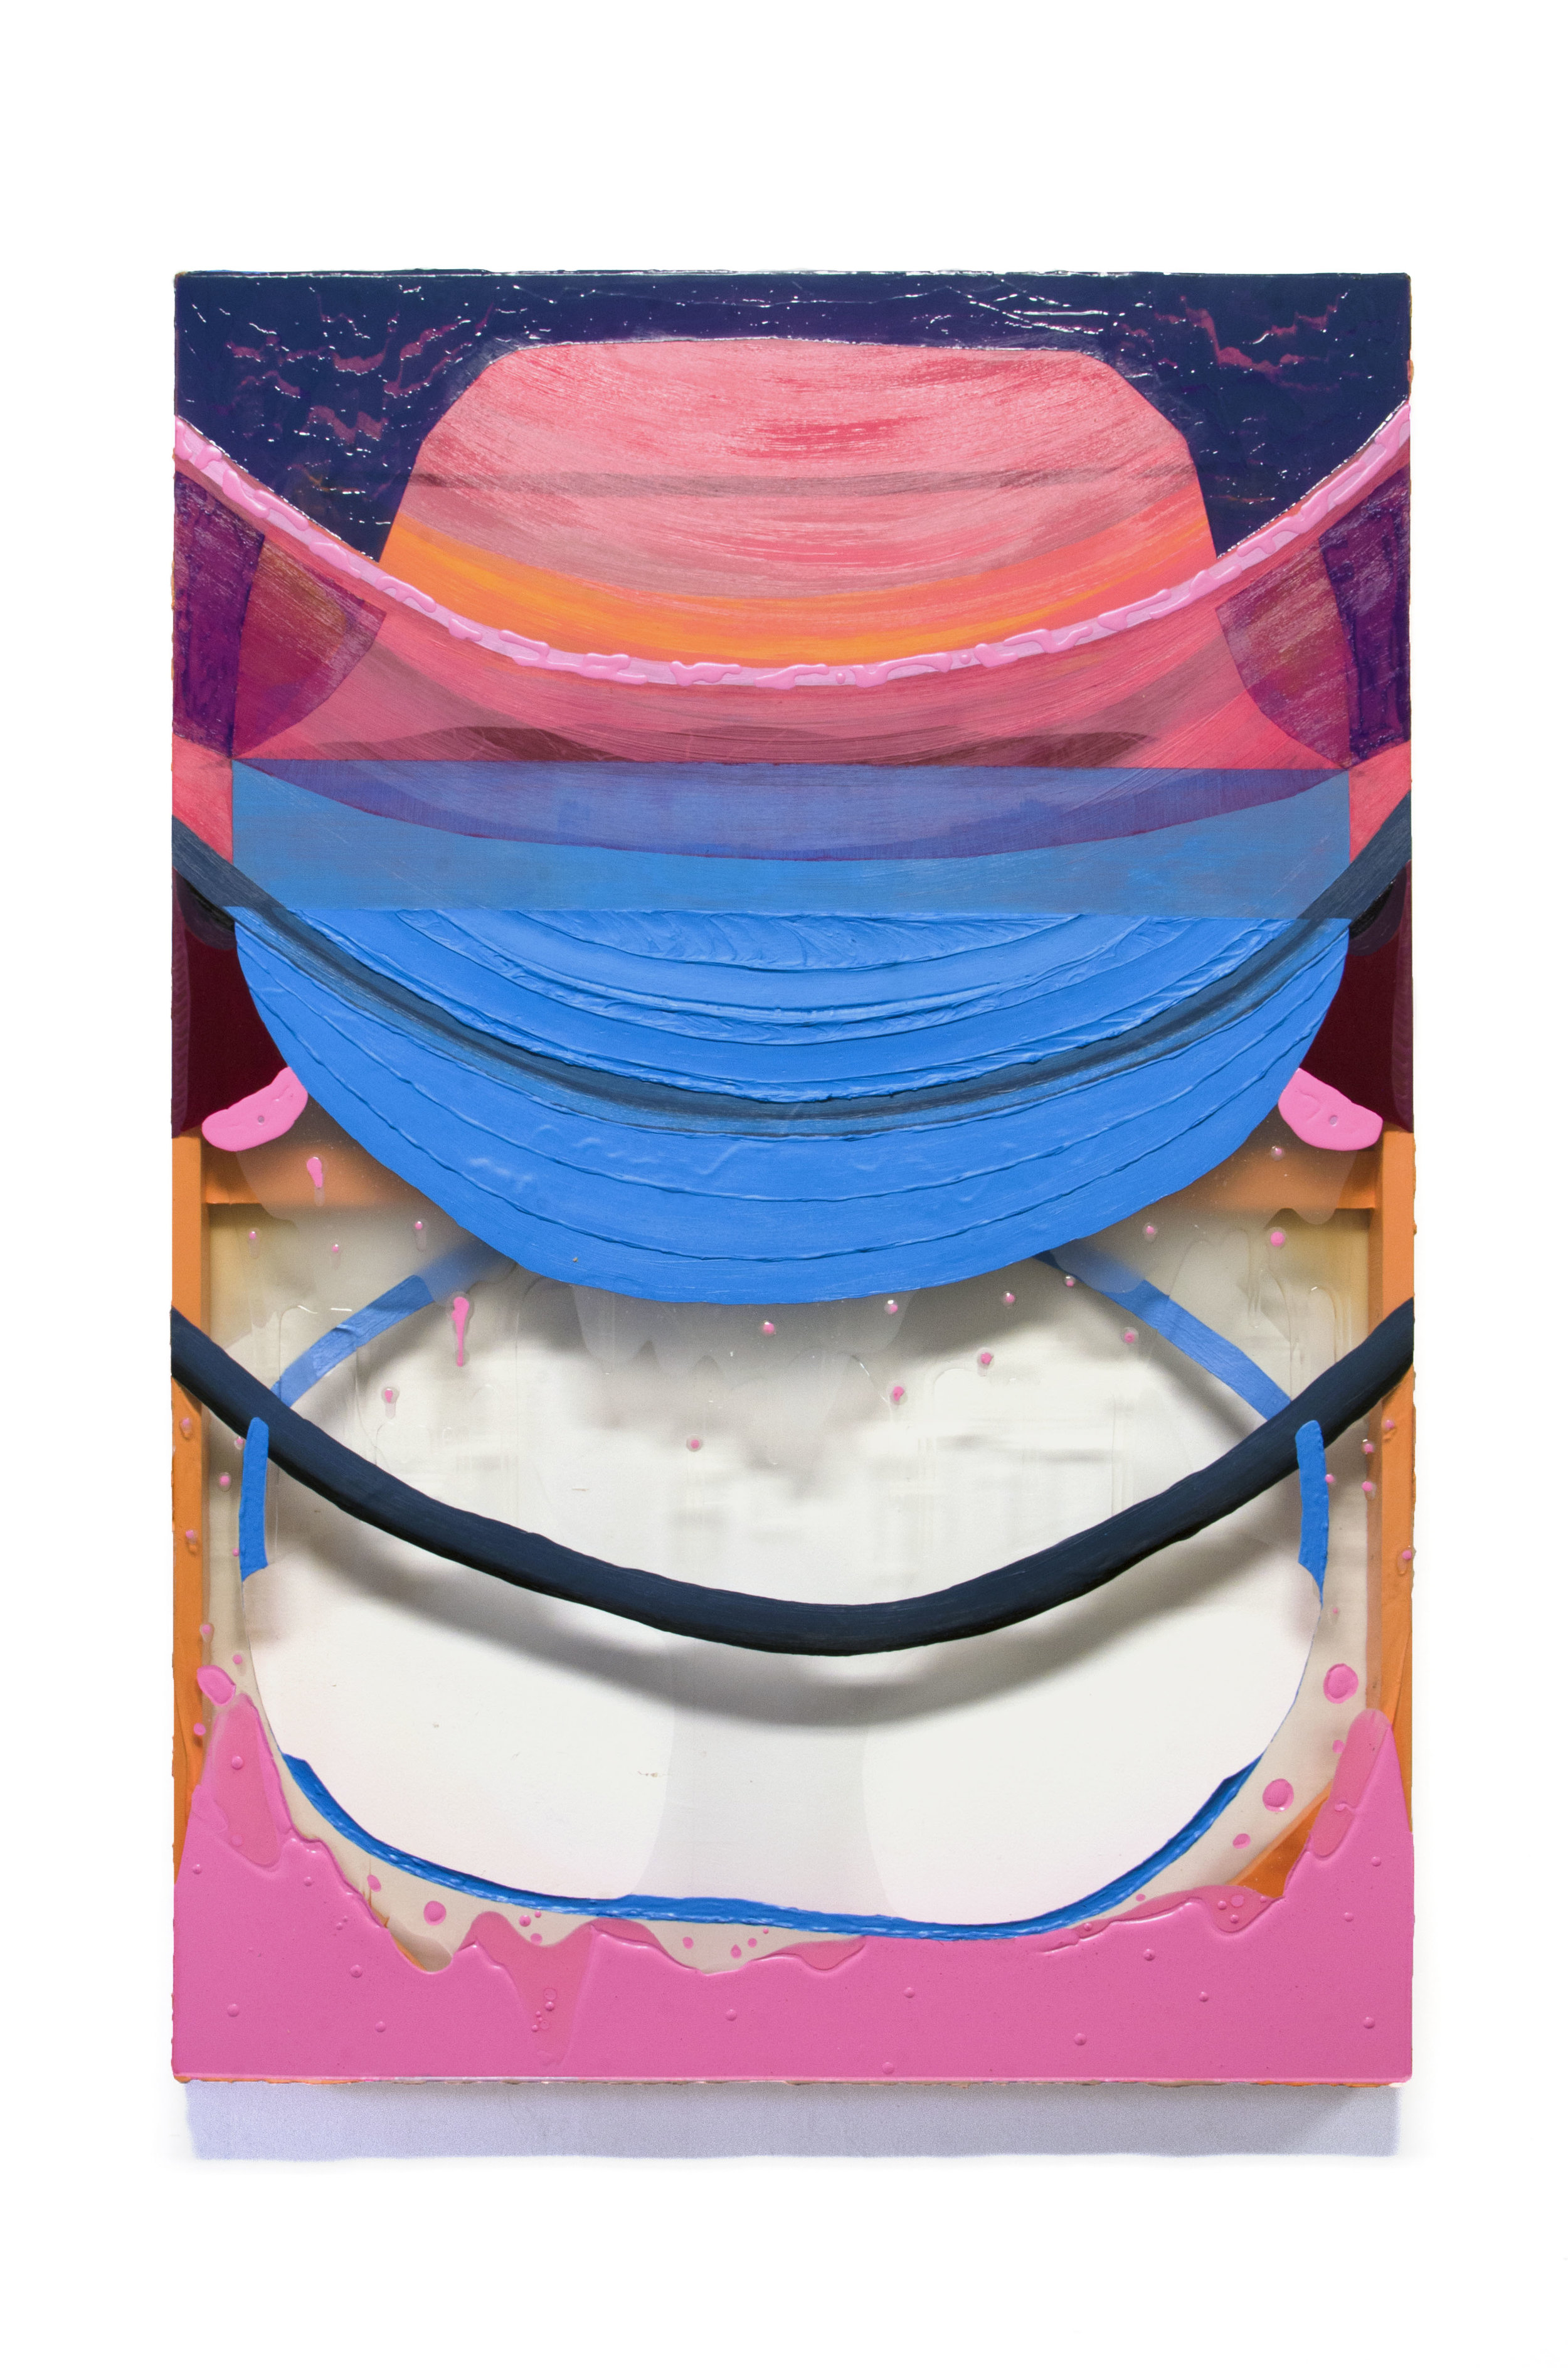 Elise Thompson Lap, 2018 Acrylic on watercolor paper, and clear vinyl 44 x 30 in.